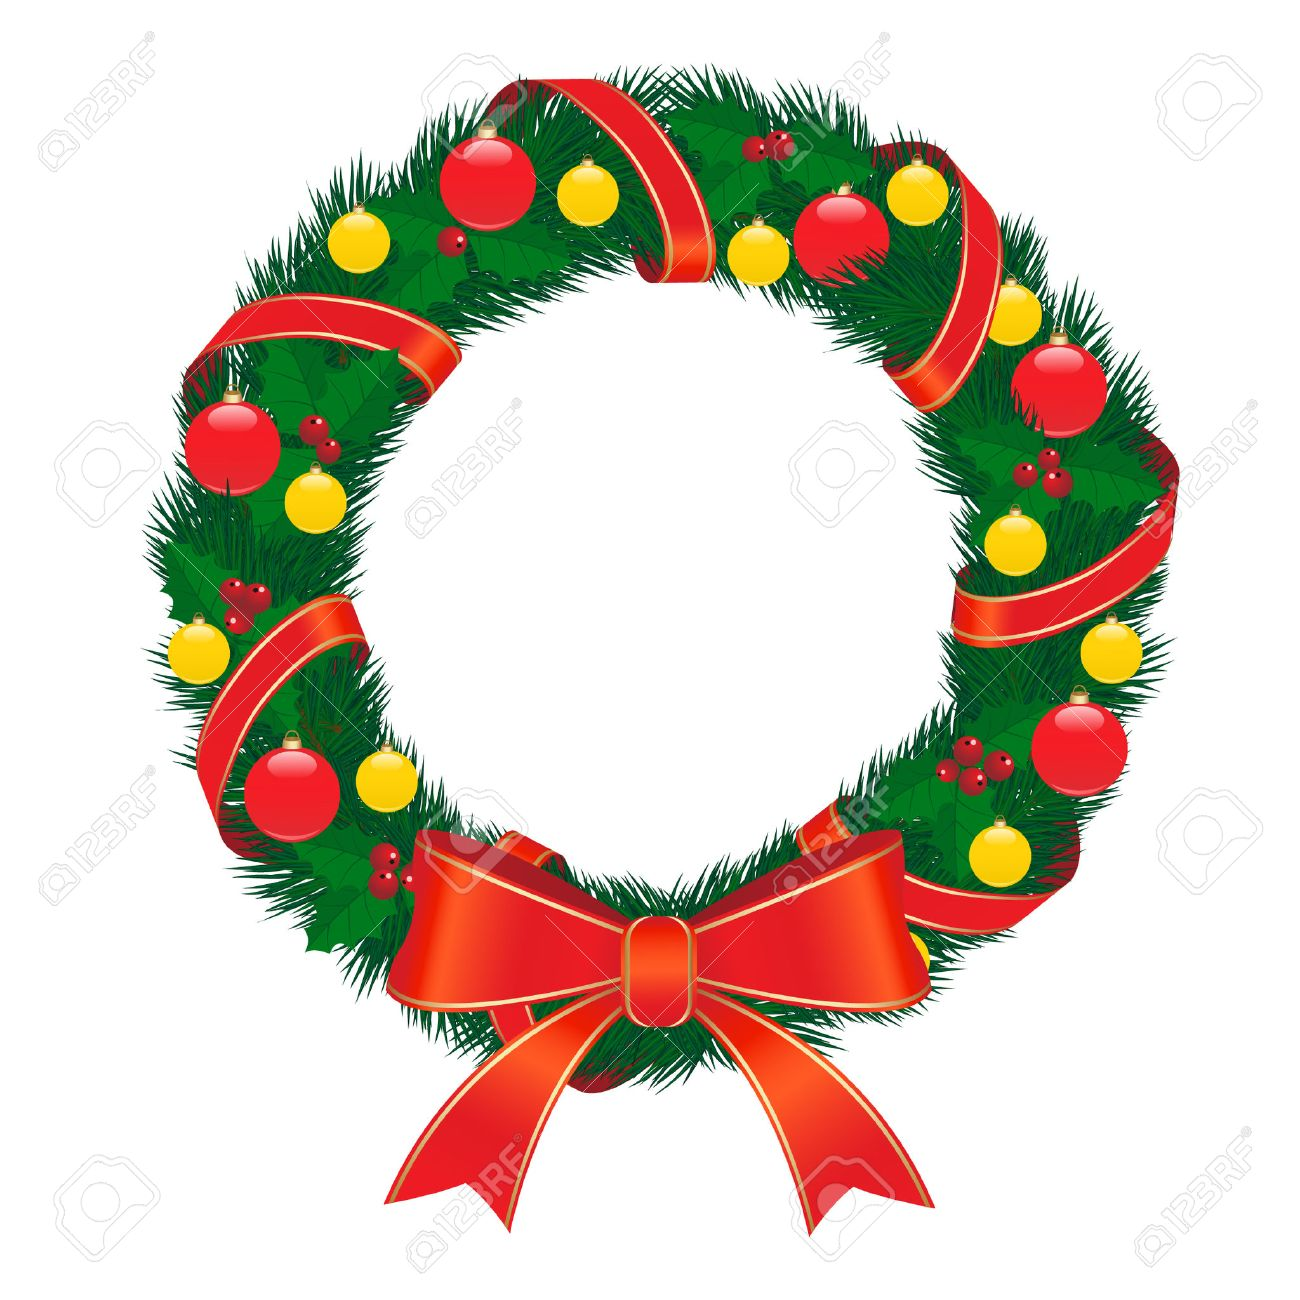 Christmas Wreath With Red Bow Royalty Free Cliparts, Vectors, And ...